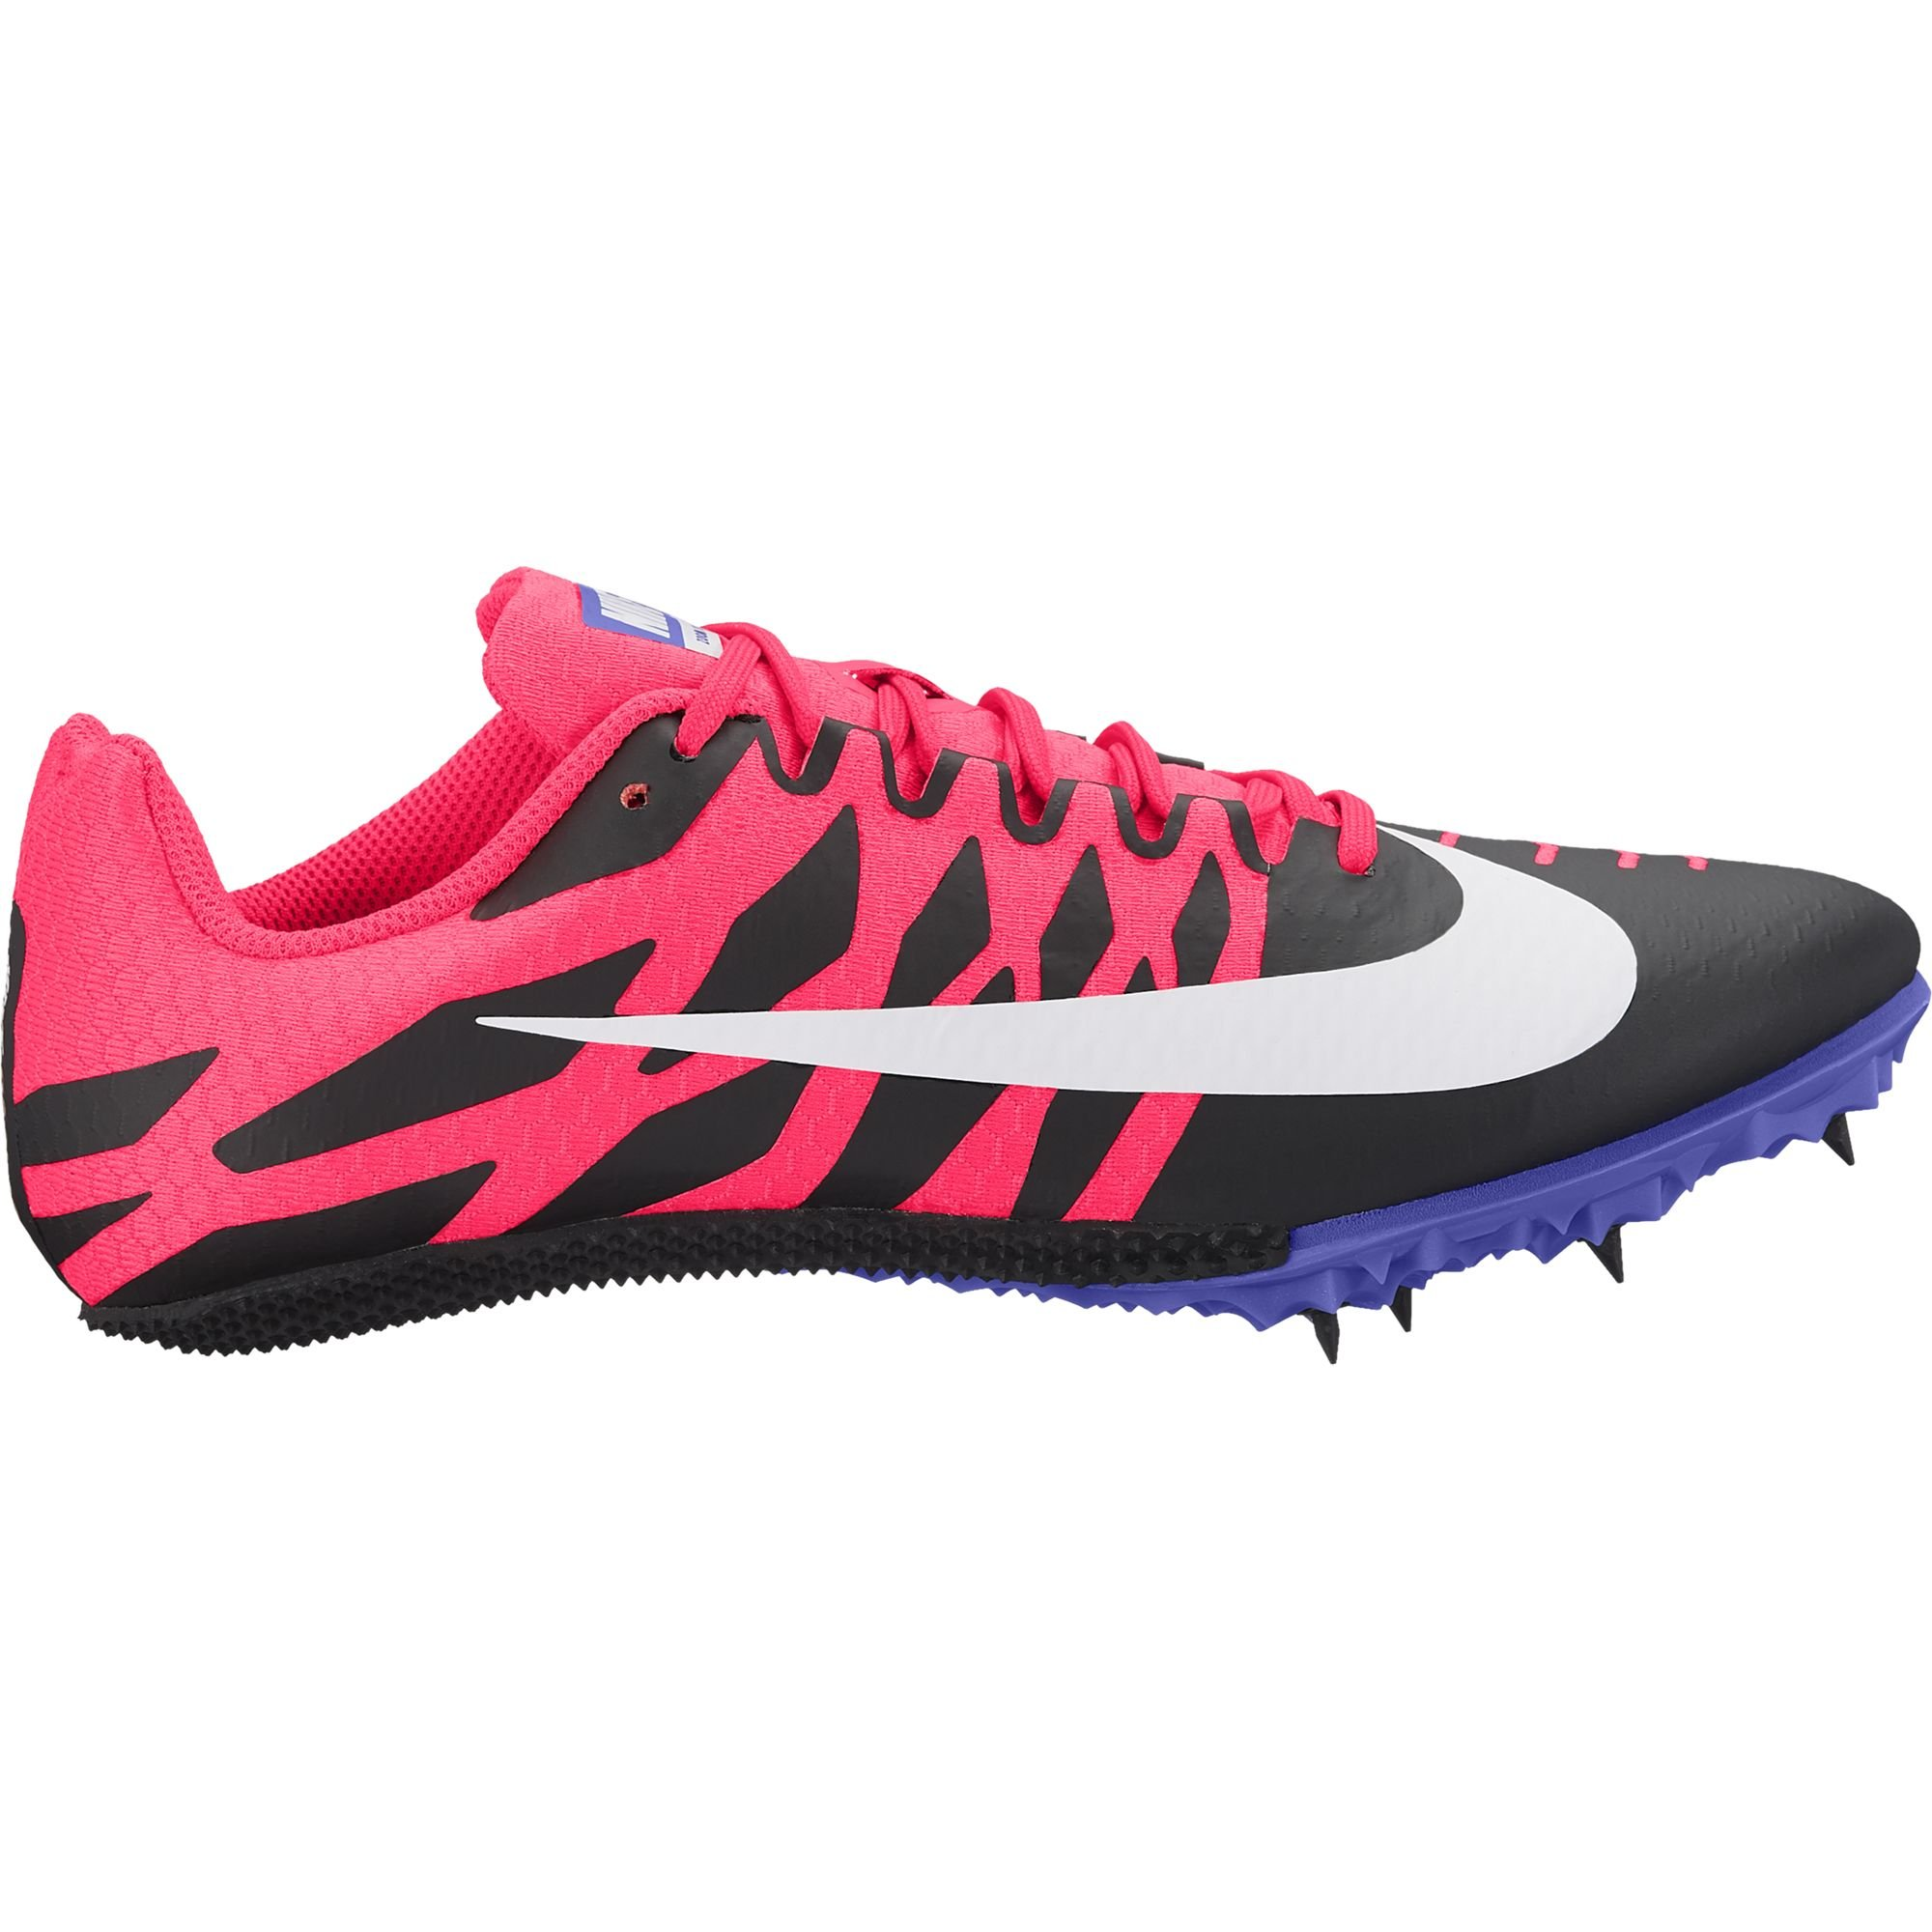 NIKE Women's Zoom Rival S 9 Track Spike Black/White/Solar Red/Persian Violet Size 7 M US